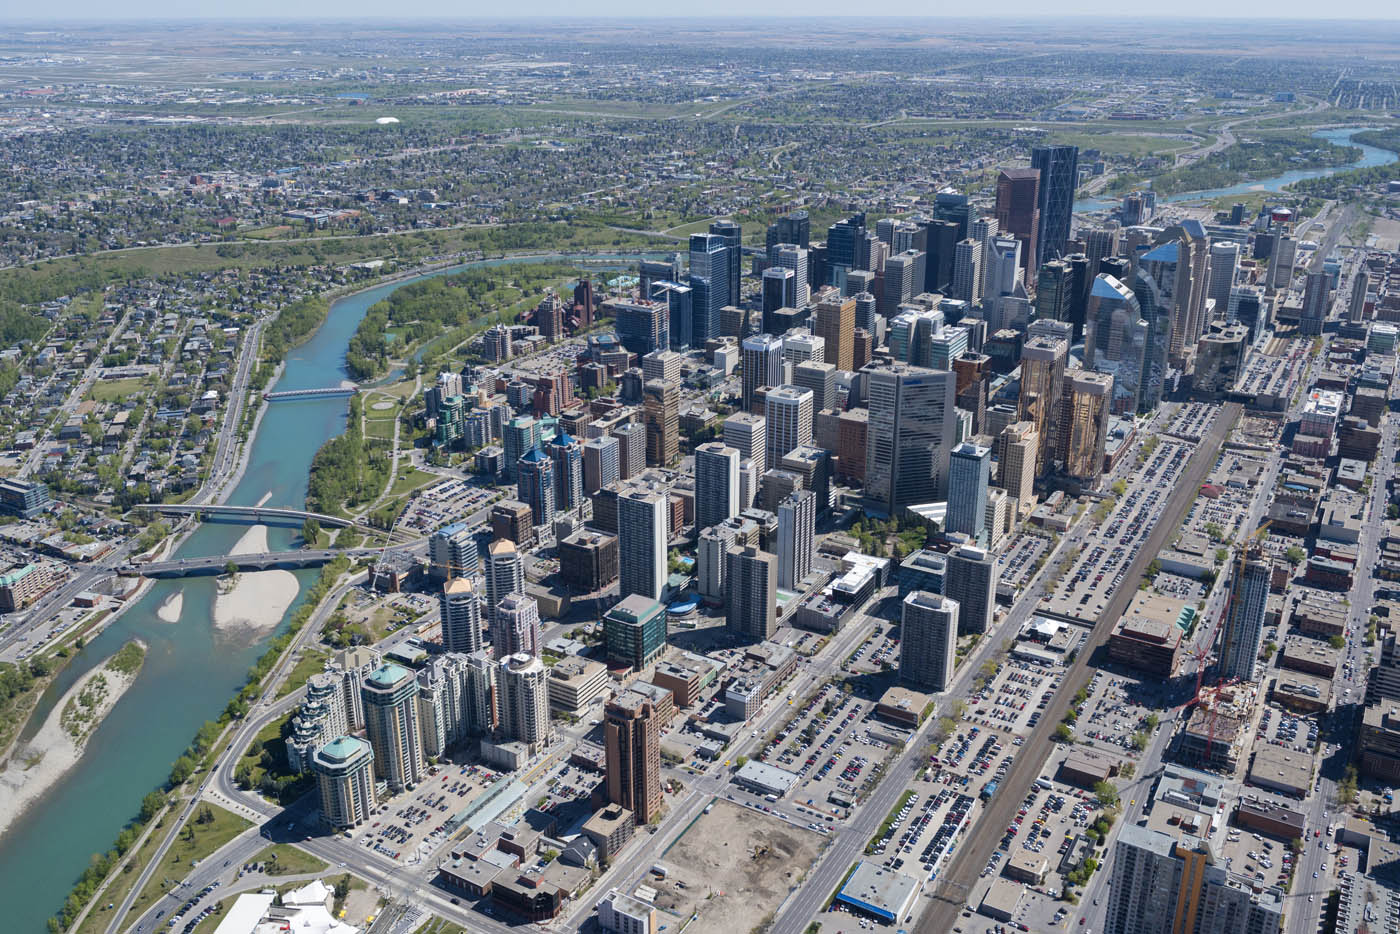 Downtown is an island of skyscrapers in a sea of low rise buildings. In this photo you can see how the Bow River divides the western half of the city into north and south quadrants. (photo credit Peak Aerials).